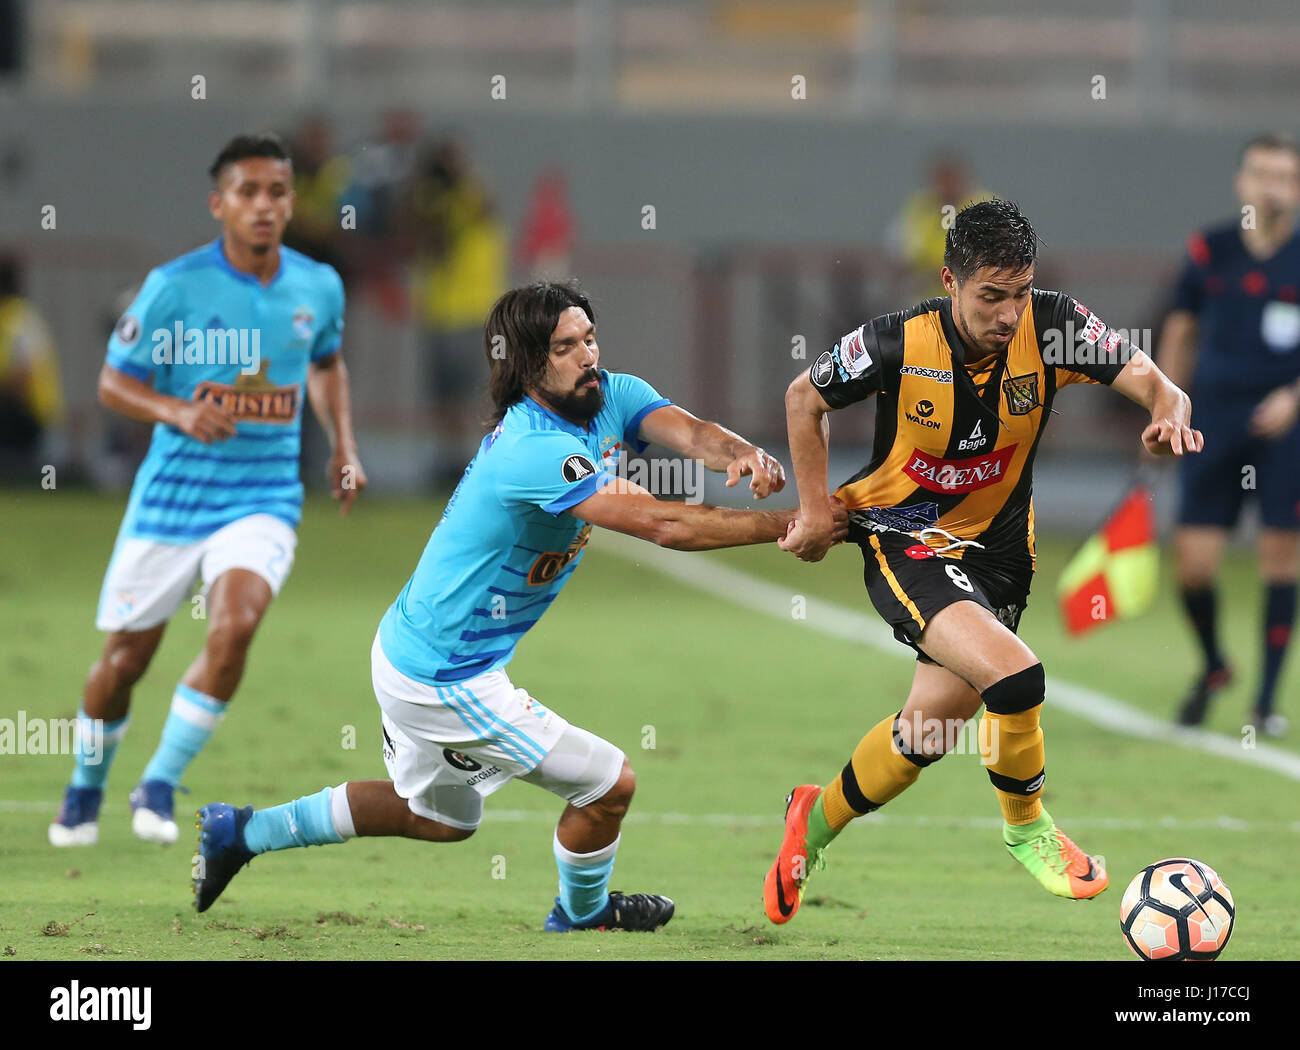 The Strongest's Rodrigo Ramallo (R) vies for the ball with Sporting Cristal's jorge Cazulo (C) during their - Stock Image